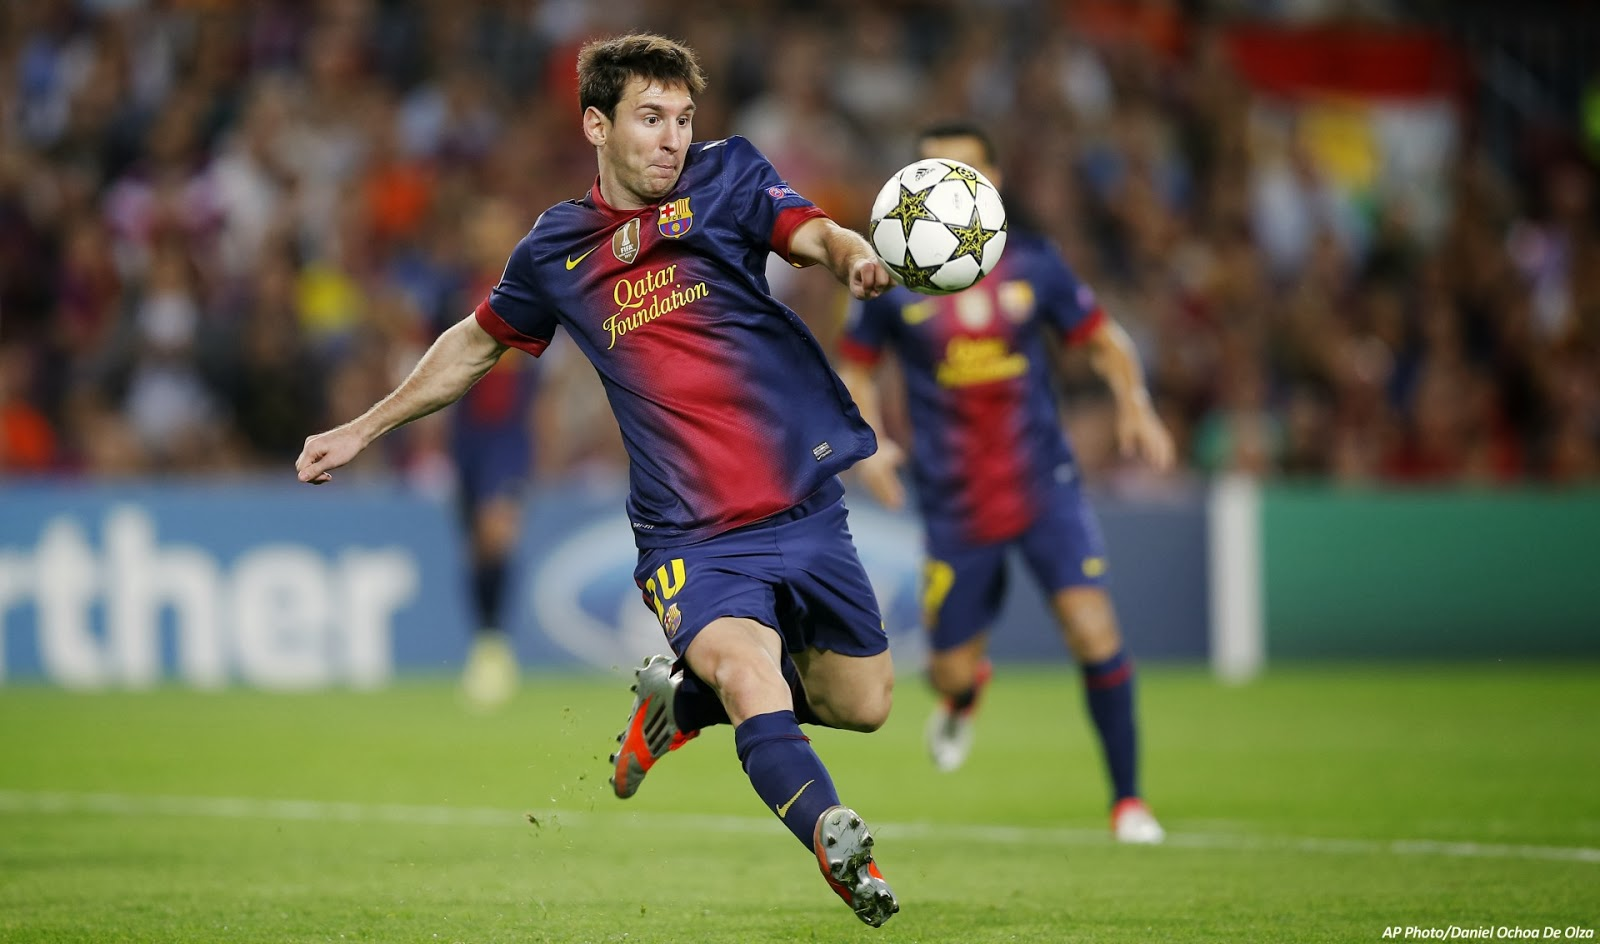 Lionel messi action free hd wallpaper download here lionel messi action voltagebd Image collections